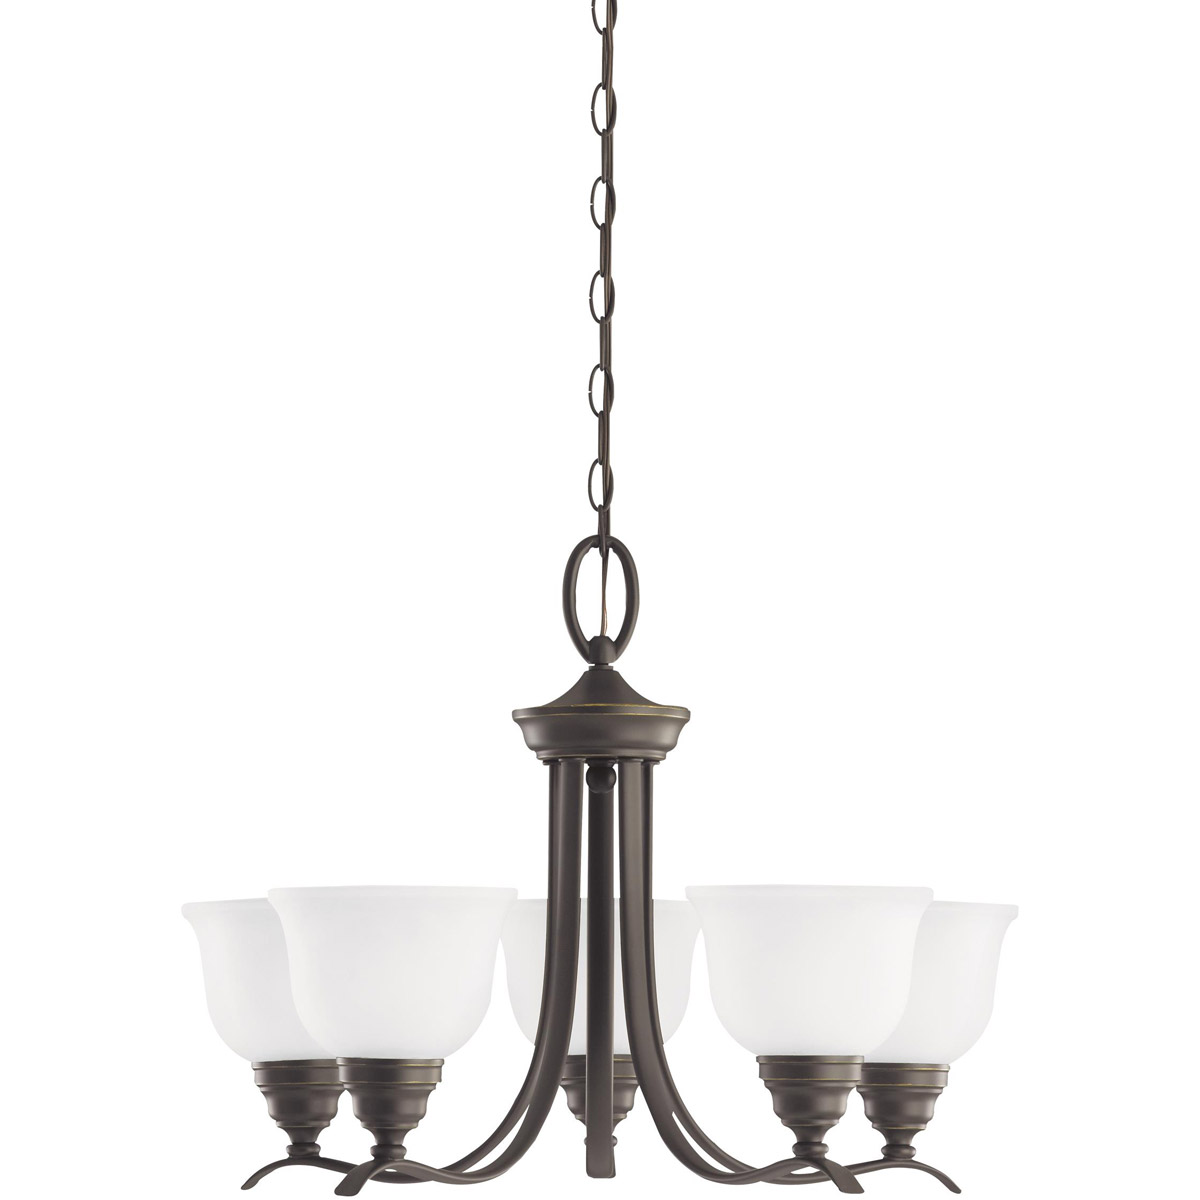 Sea Gull 31626-782 Wheaton 5 Light 24 inch Heirloom Bronze Chandelier Ceiling Light in Standard photo